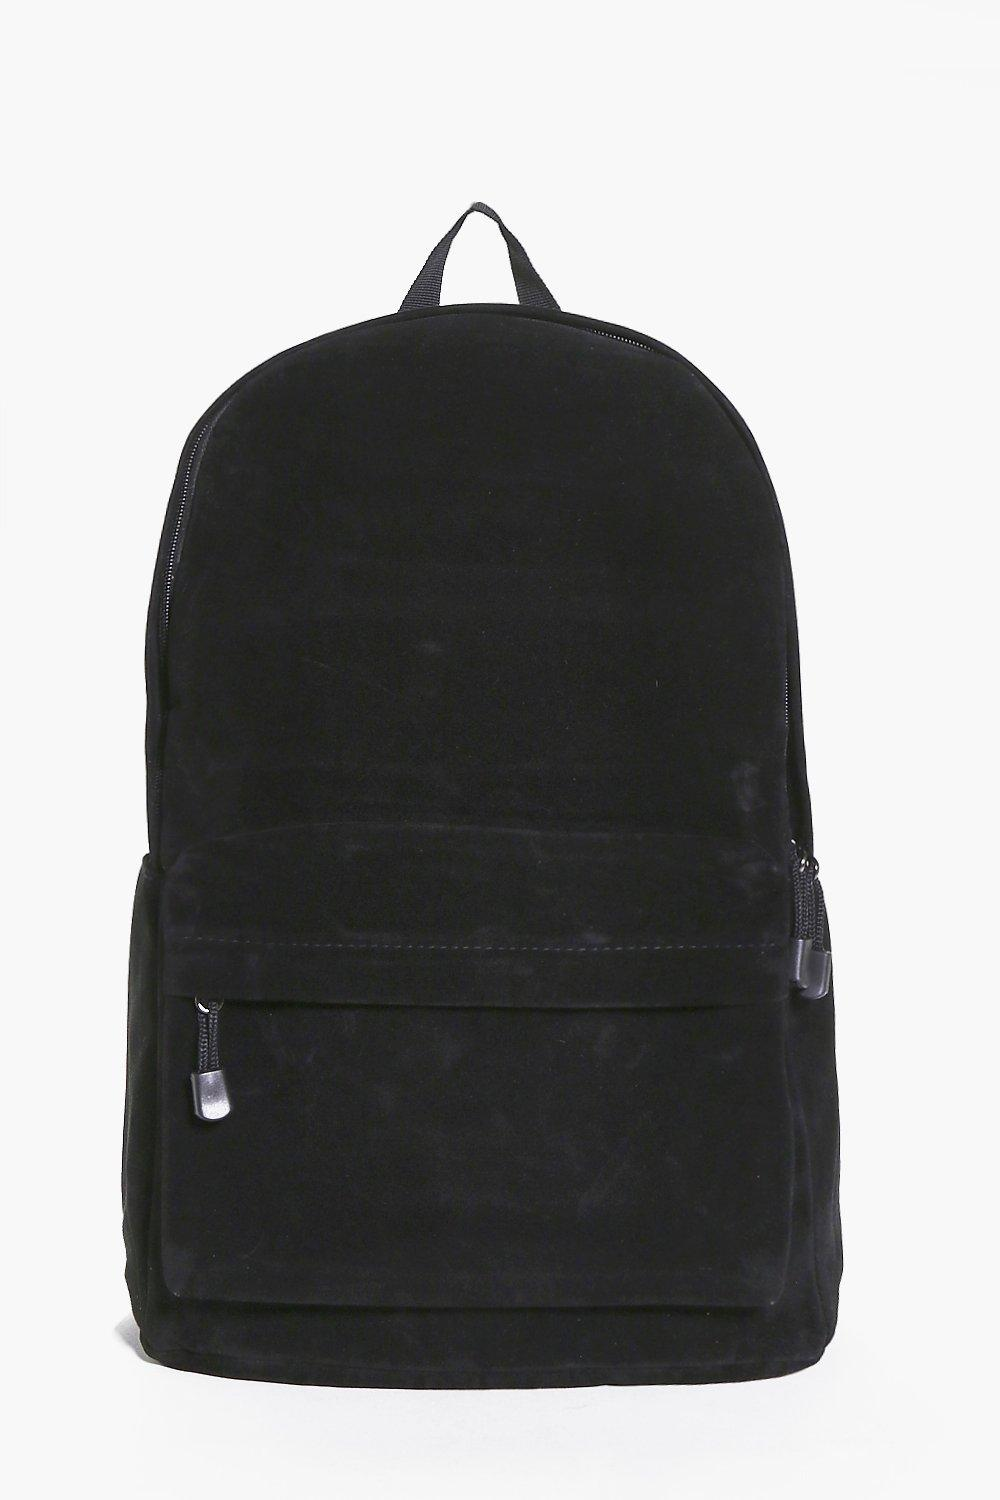 Rucksack With Front Zip Pocket - black - Suedette